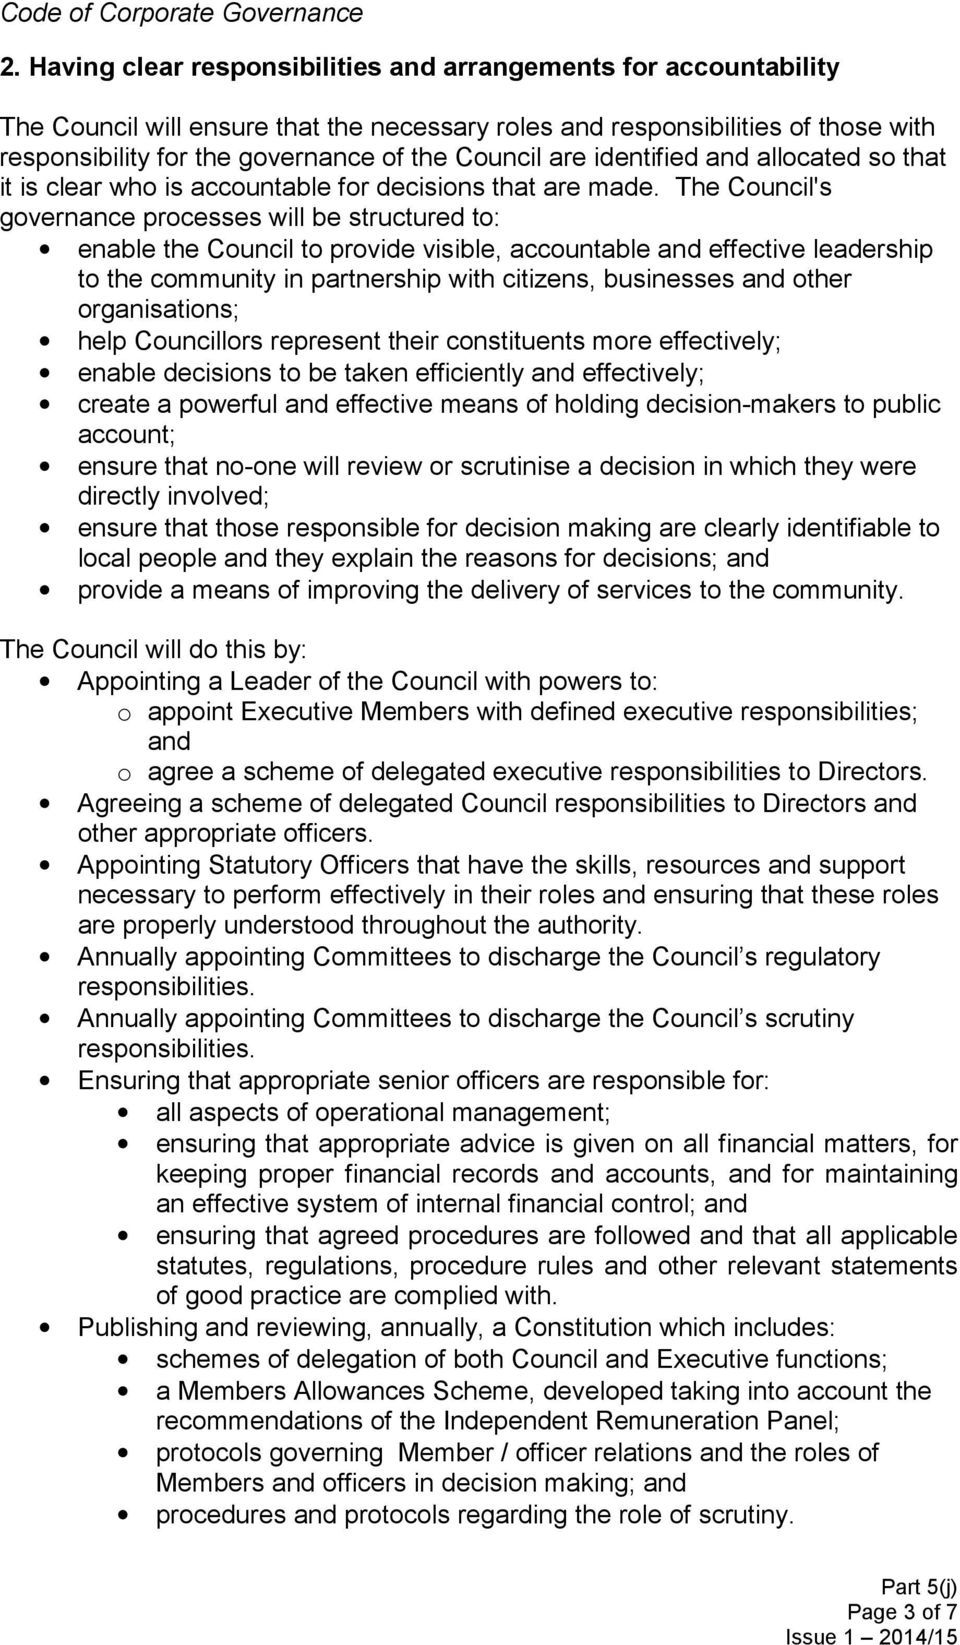 The Council's governance processes will be structured to: enable the Council to provide visible, accountable and effective leadership to the community in partnership with citizens, businesses and